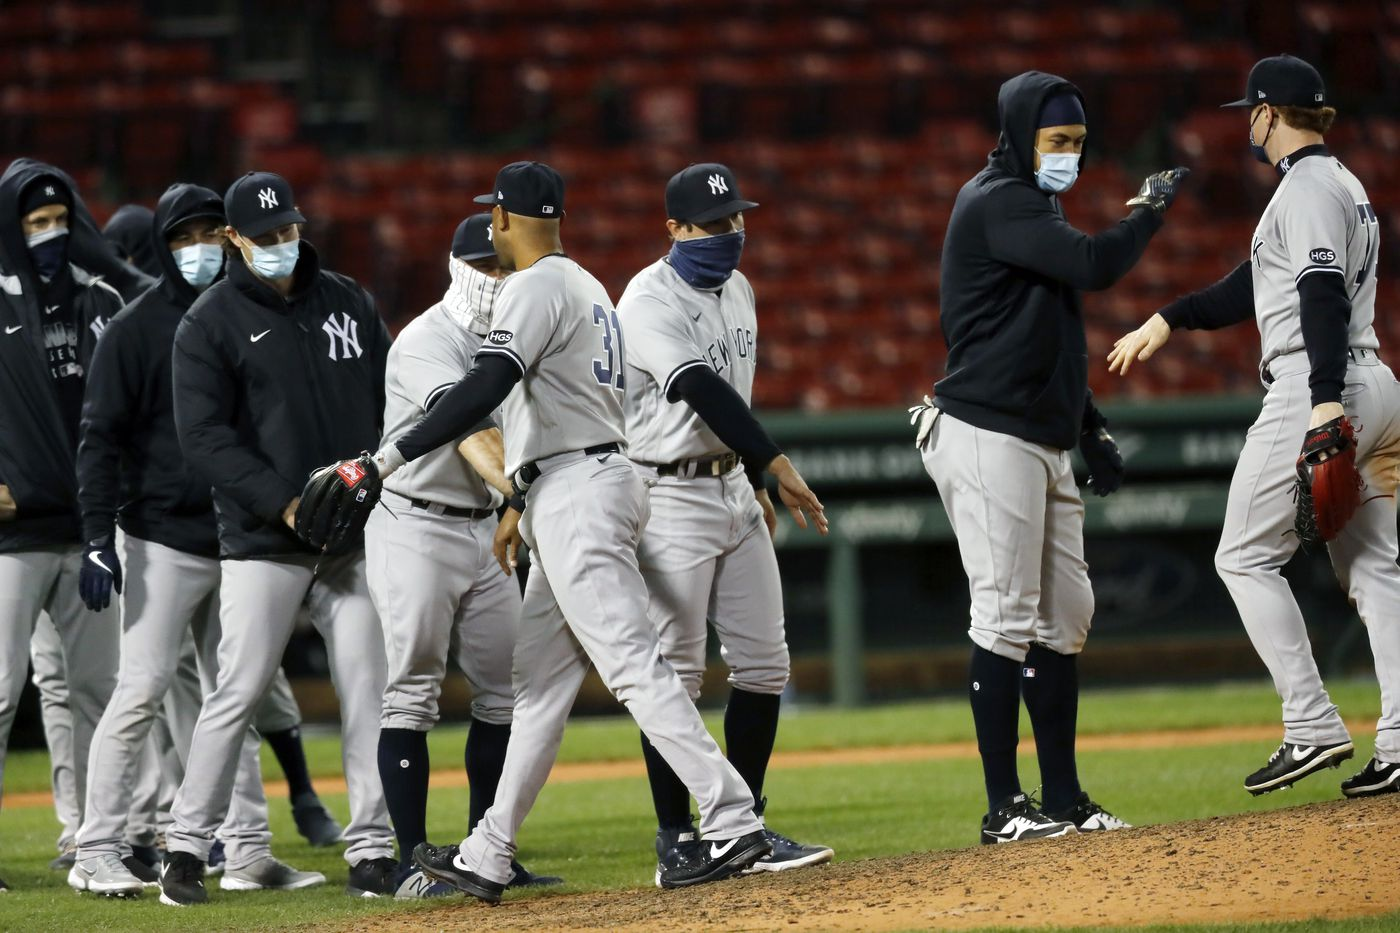 The Yankees are hot at the perfect time.